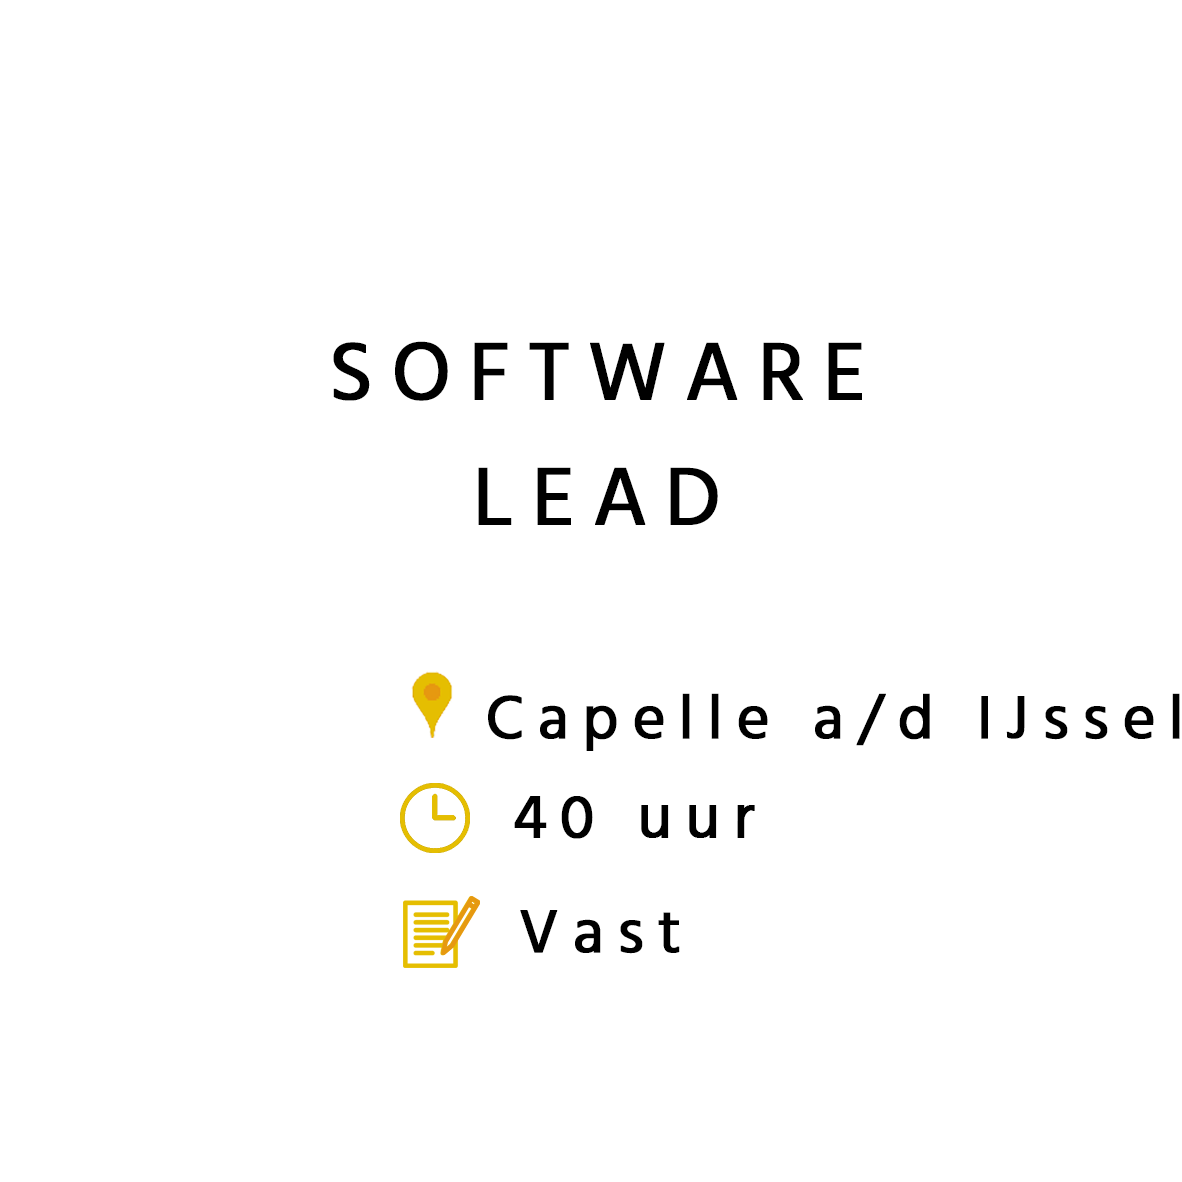 Software Lead